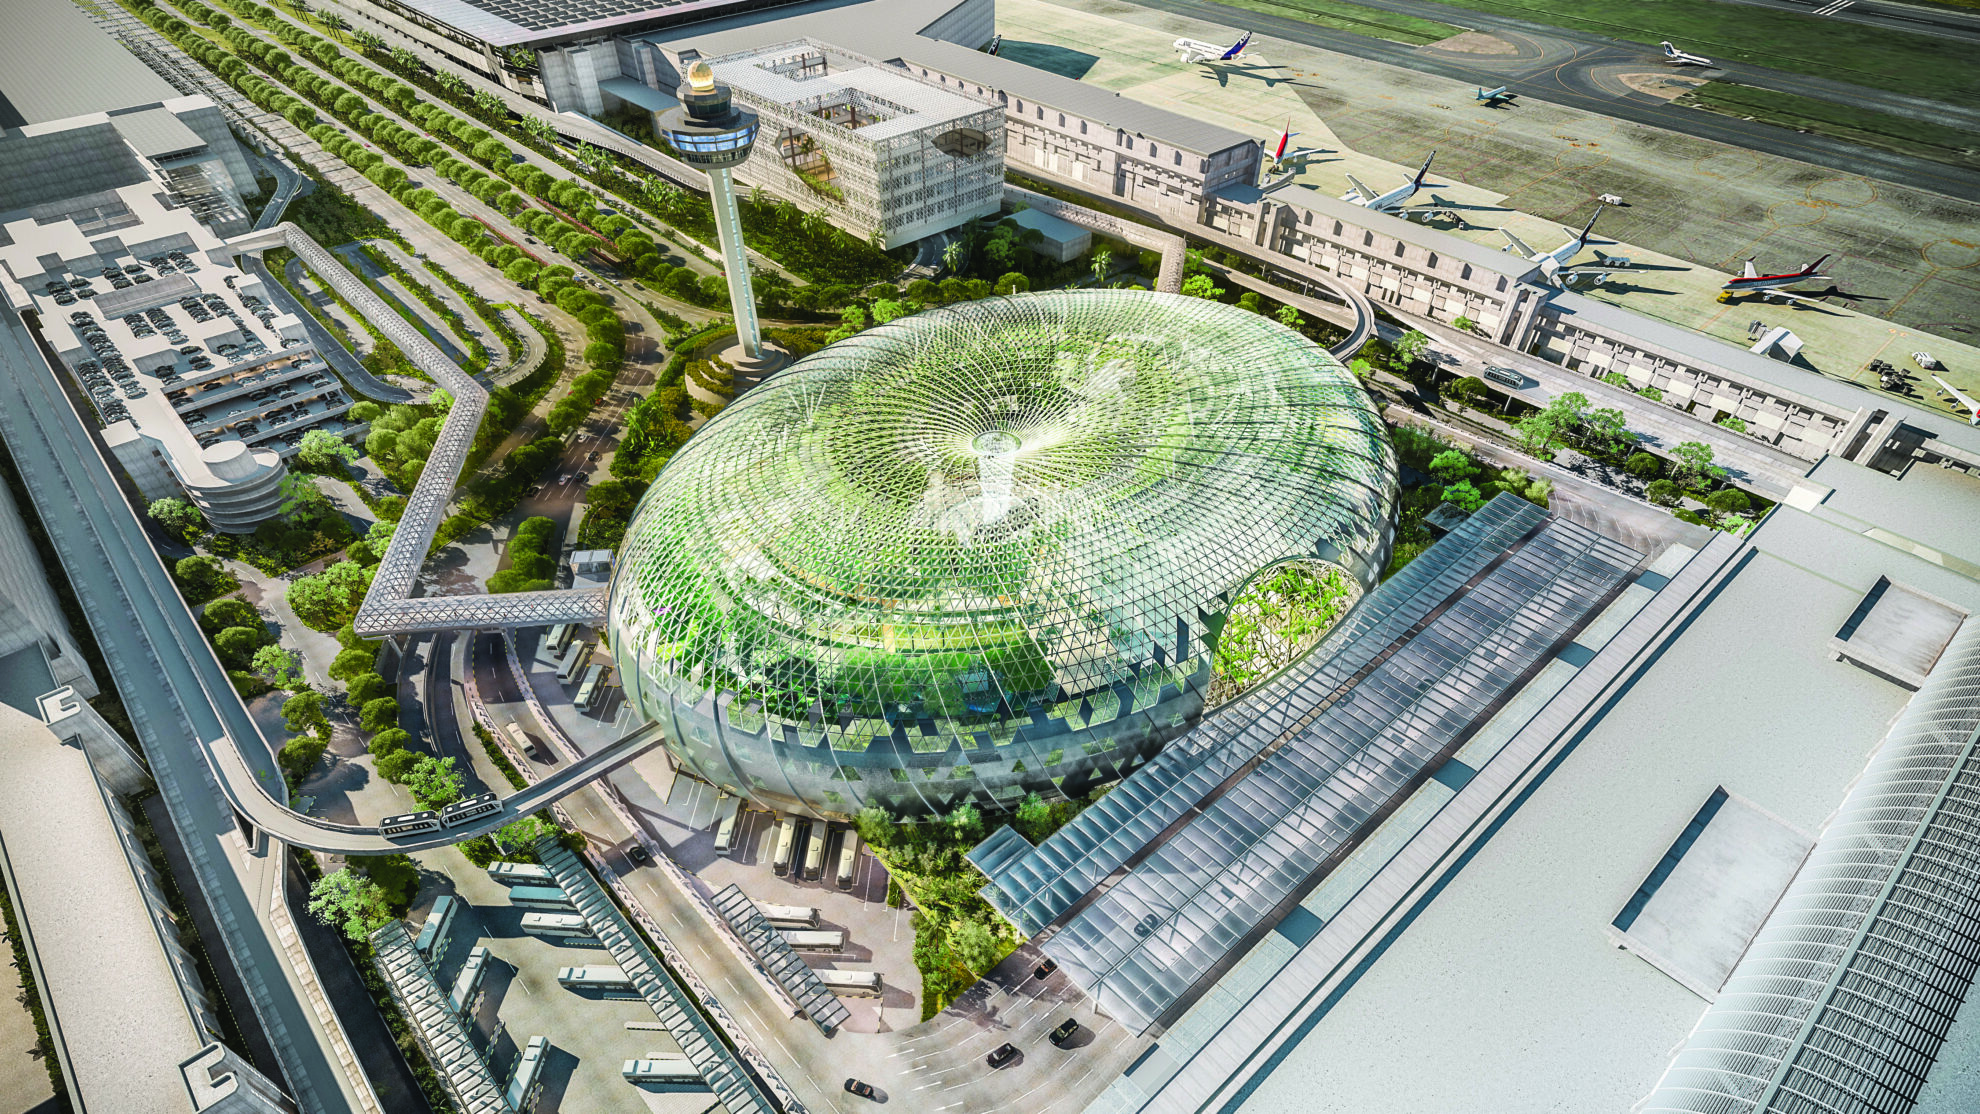 Image 3 - Aerial view of Jewel Changi Airport